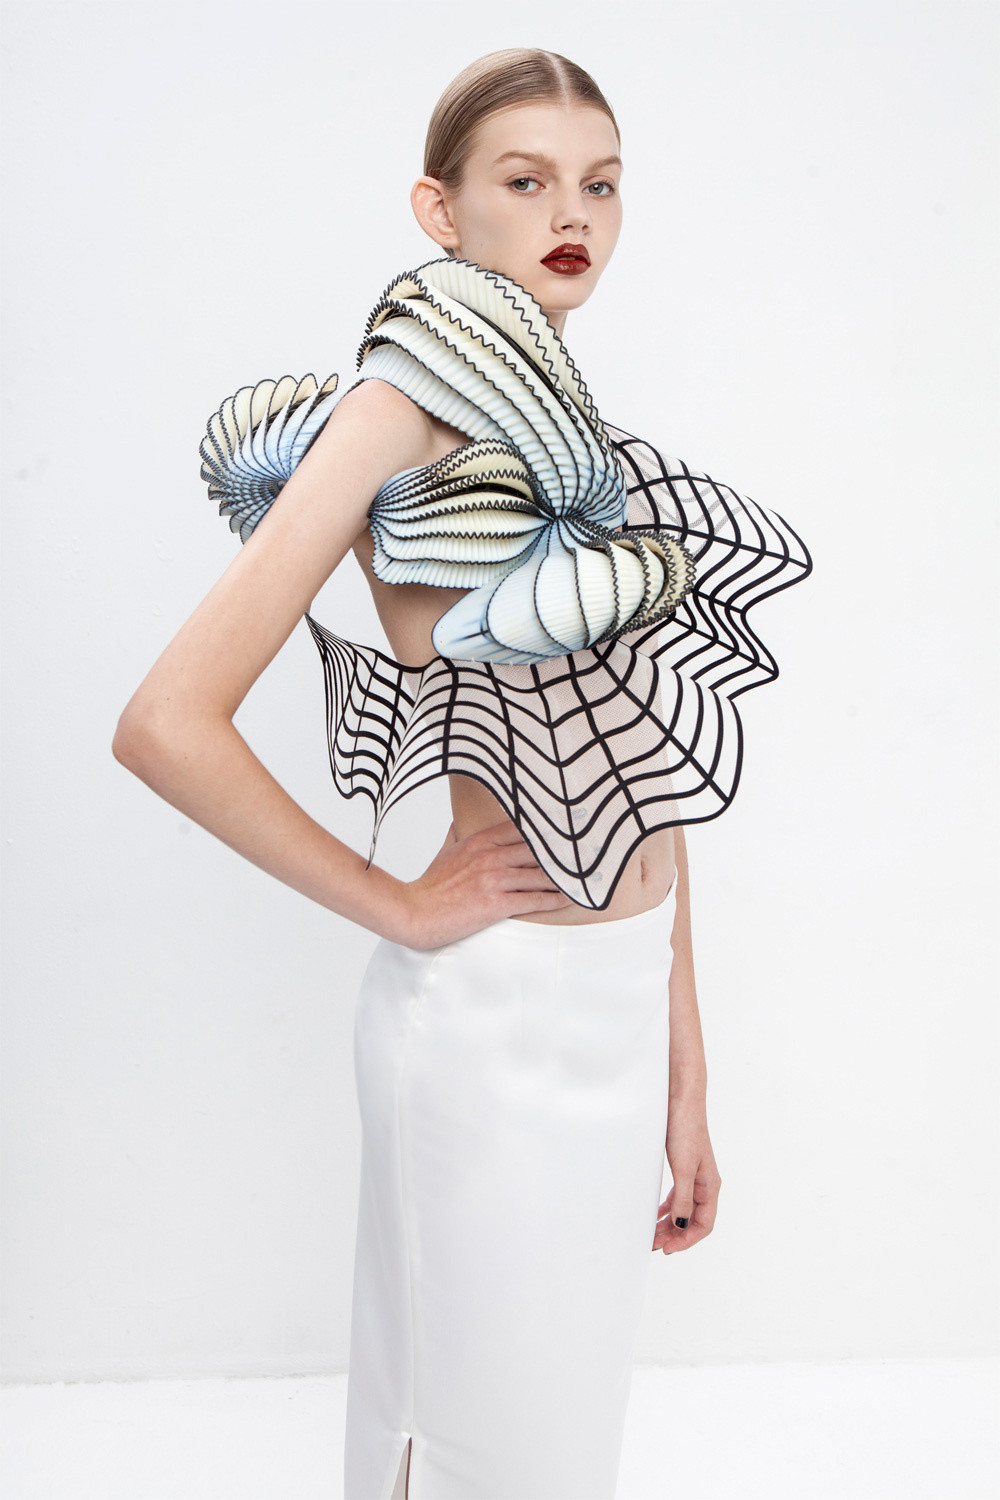 hard-copy-collection-by-noa-raviv-yellowtrace-07